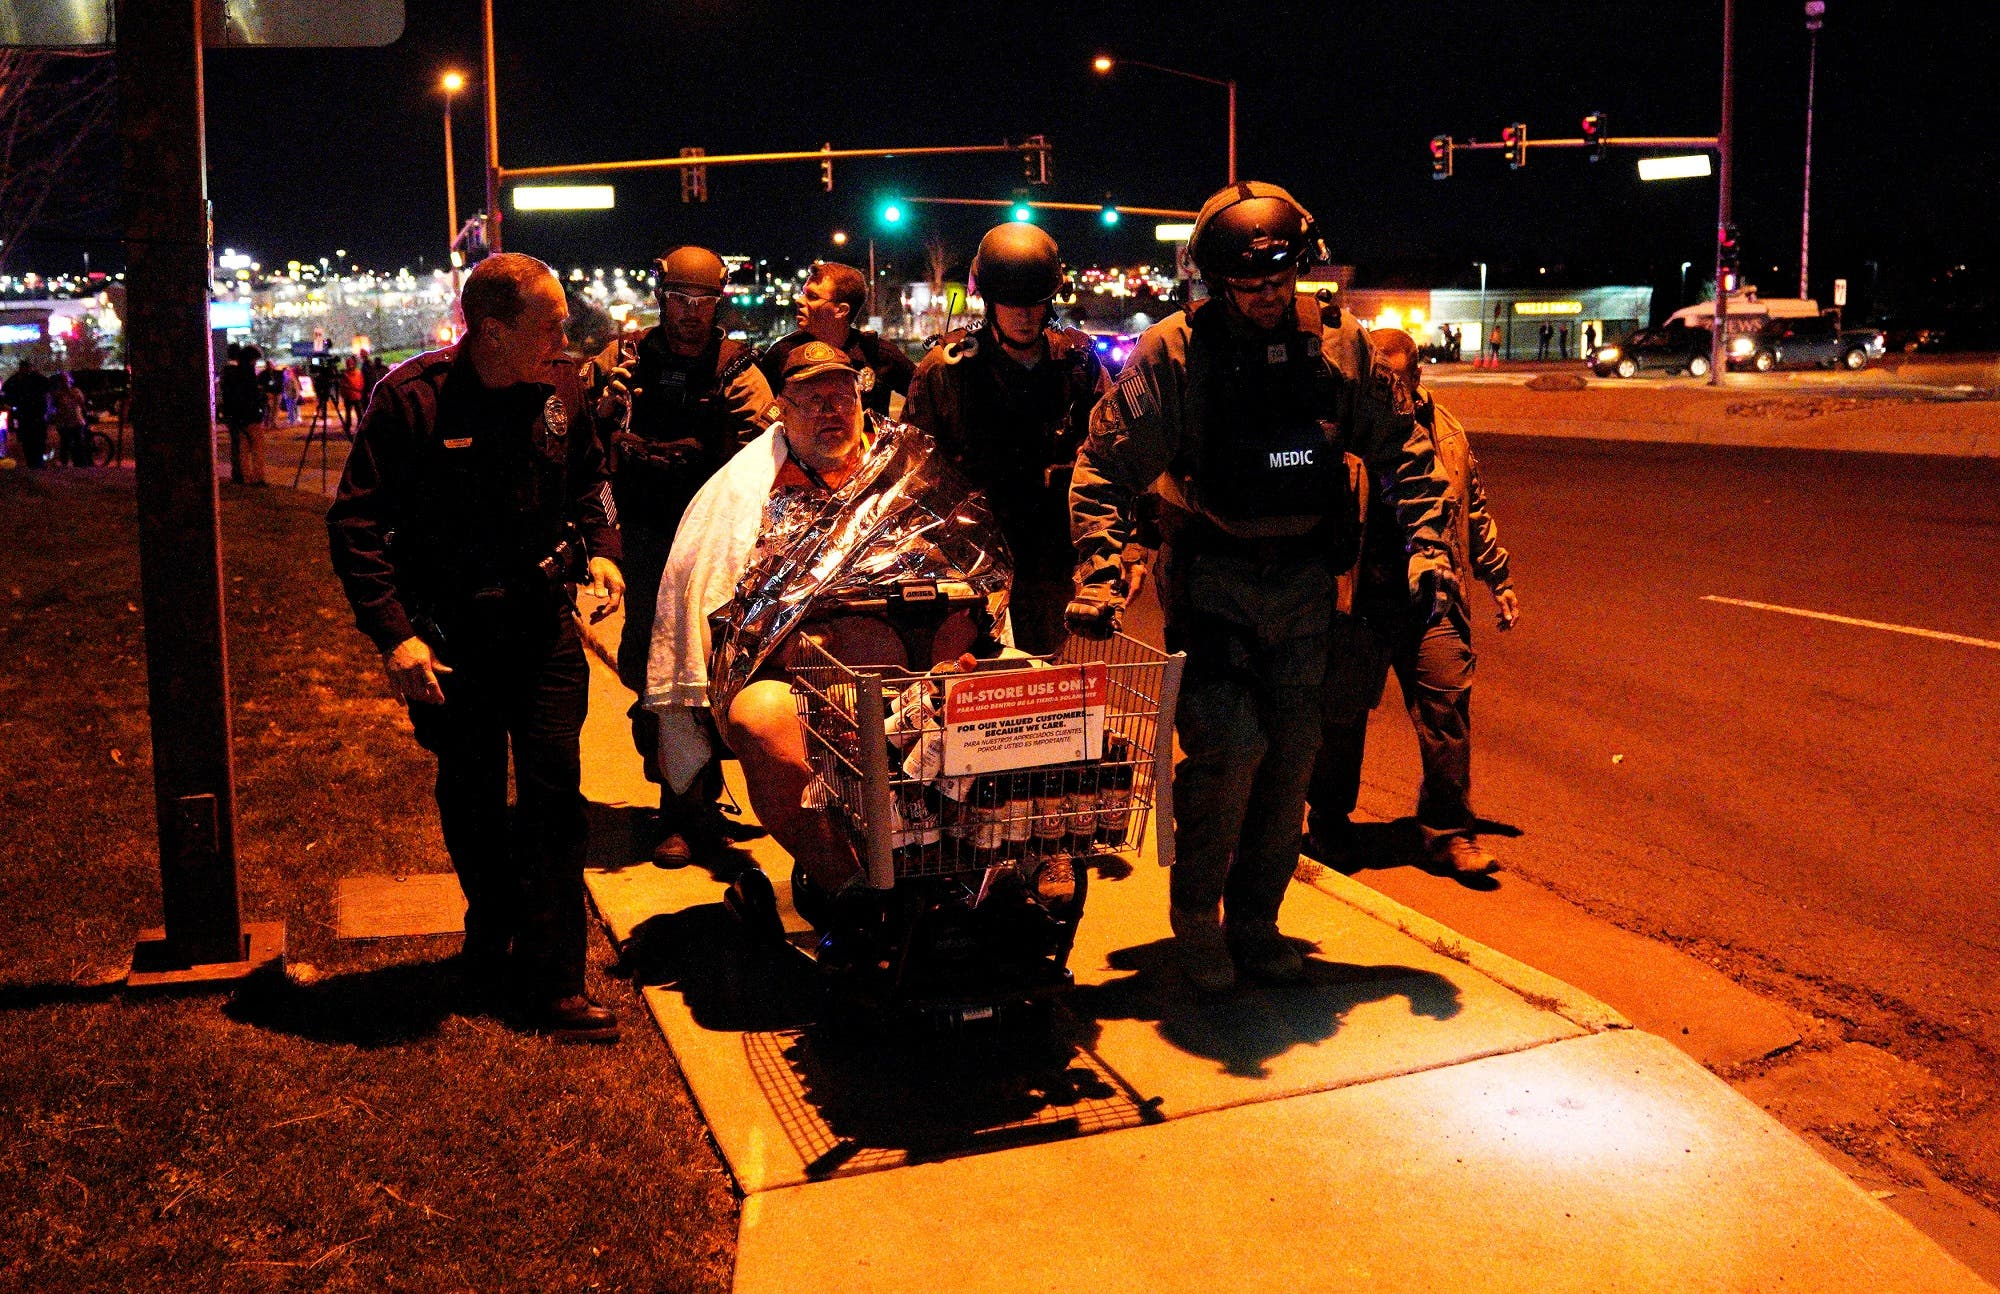 A man is evacuated in a Walmart cart by SWAT medics from the scene of shooting in Thornton, Colorado November 1, 2017. (Reuters)